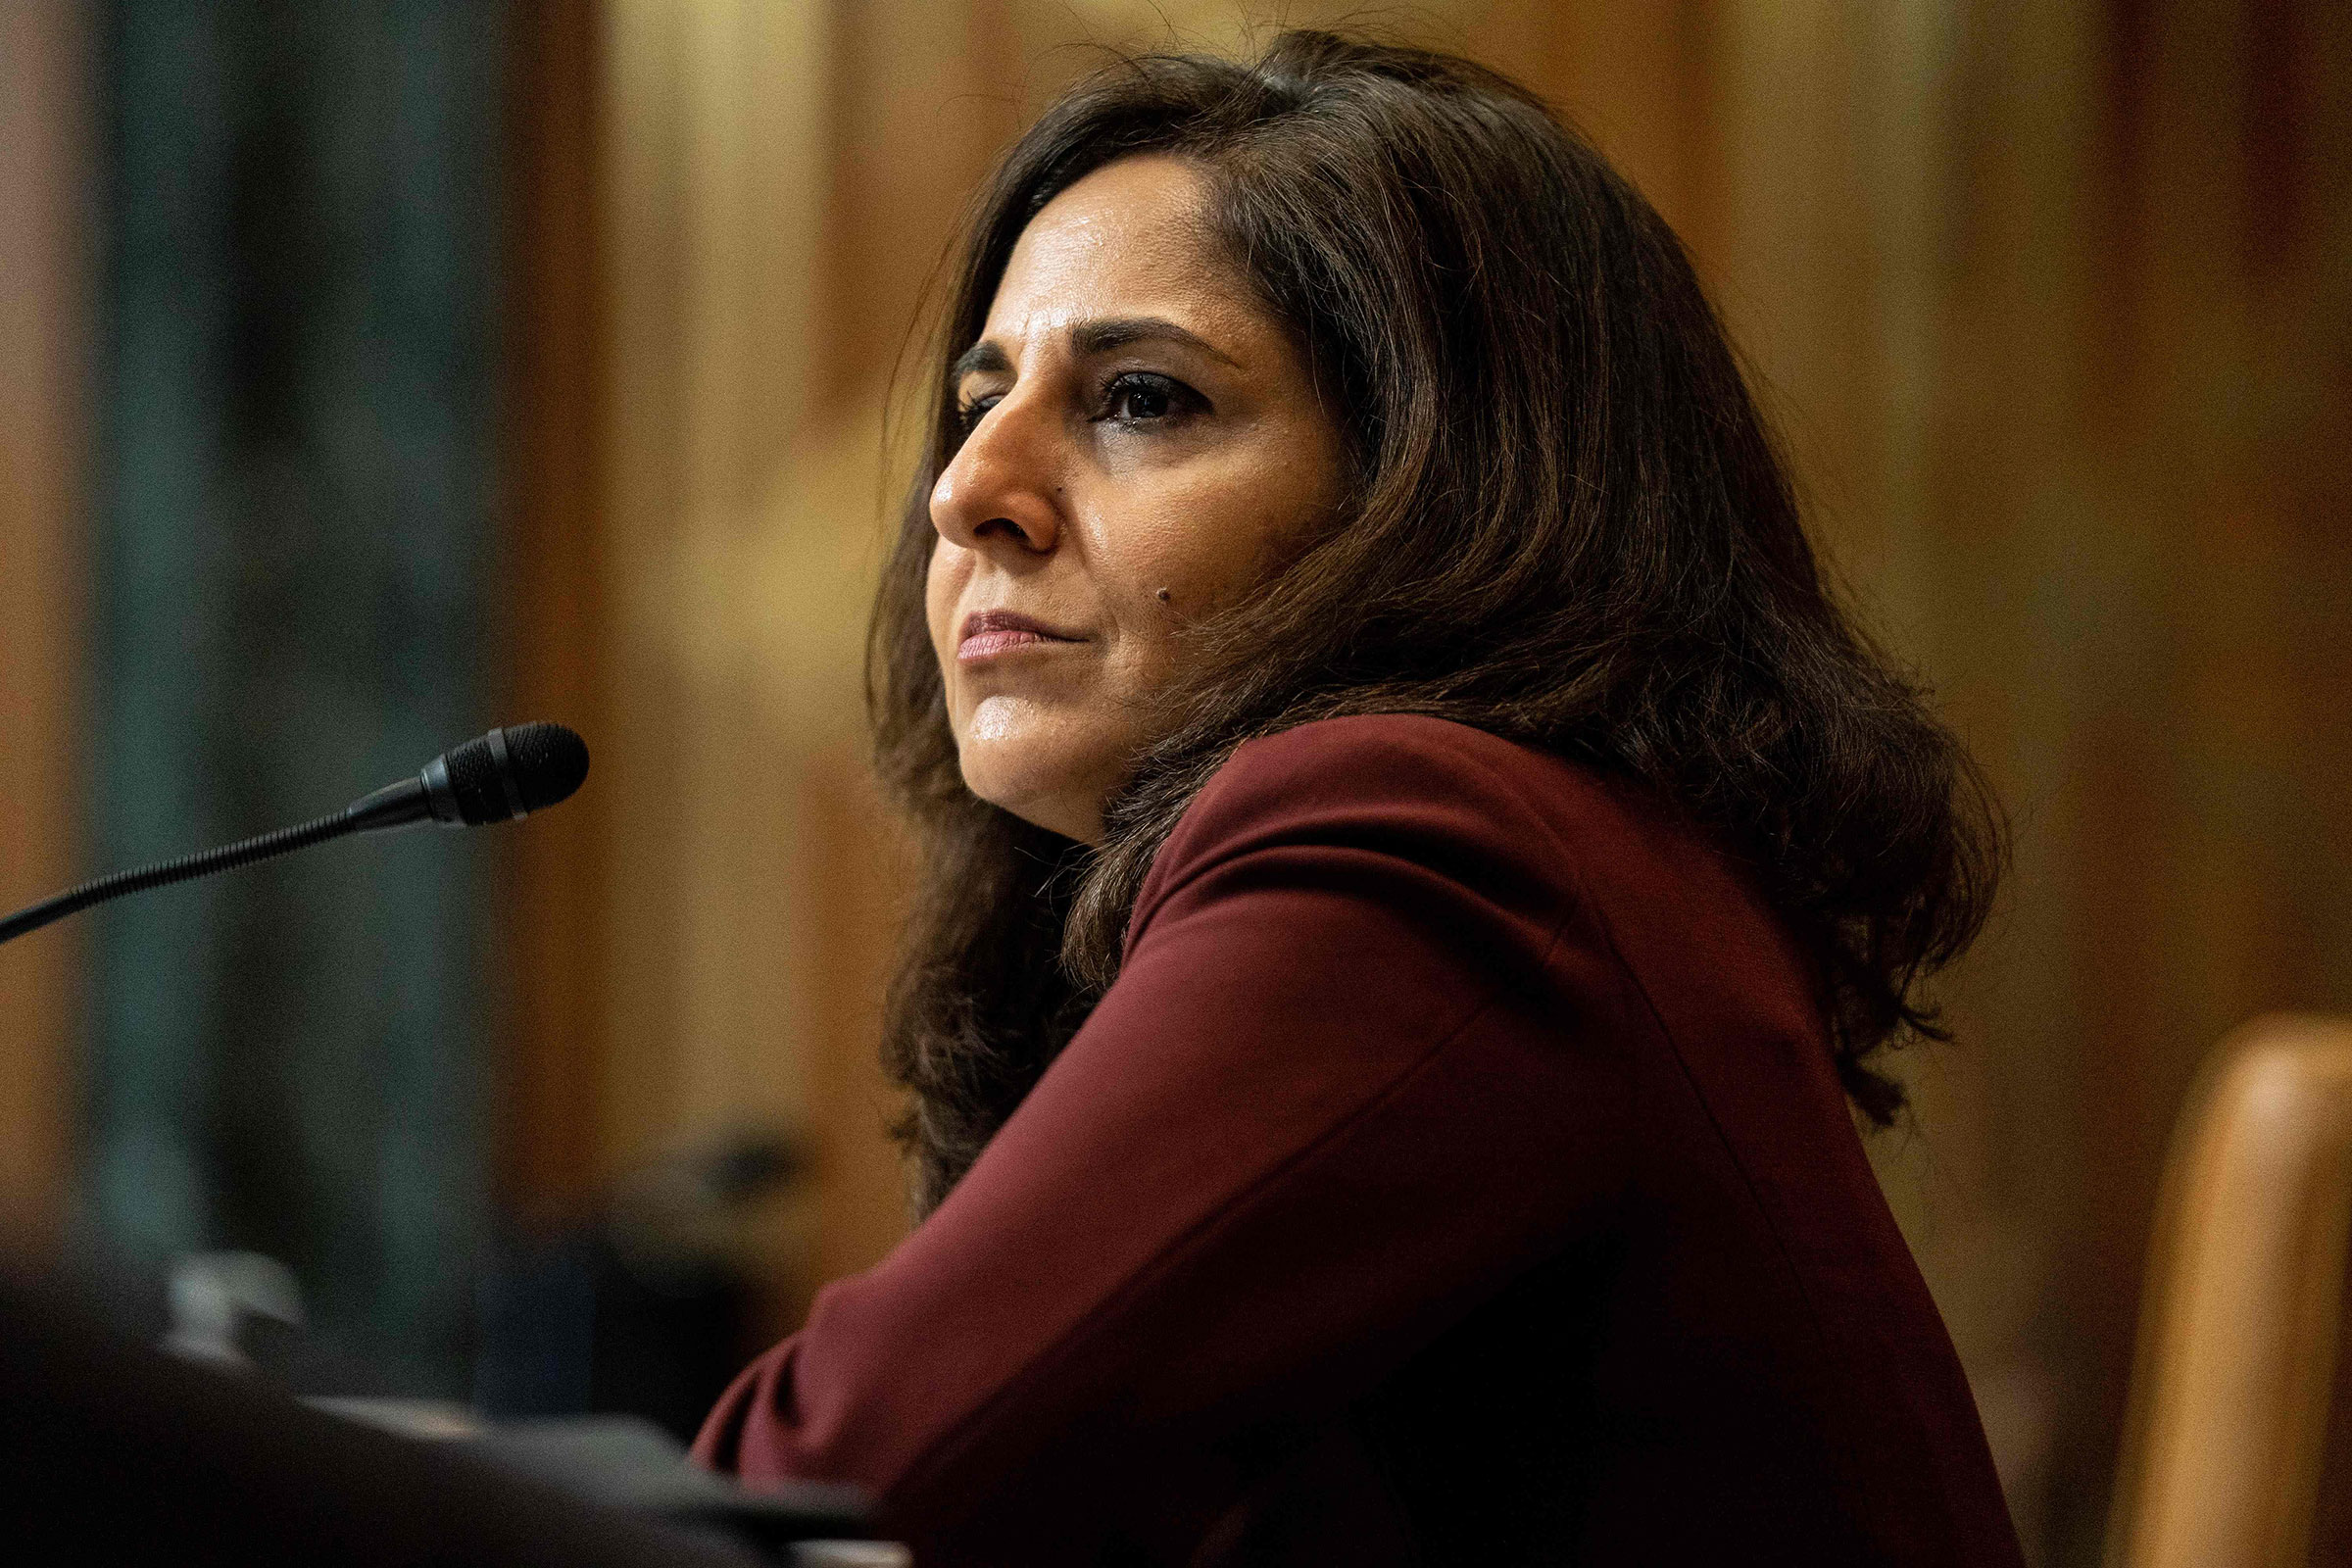 Neera Tanden, nominee for Director of the Office of Management and Budget, testifies during a Senate Committee on the Budget hearing on Capitol Hill in Washington, on Feb. 10, 2021.